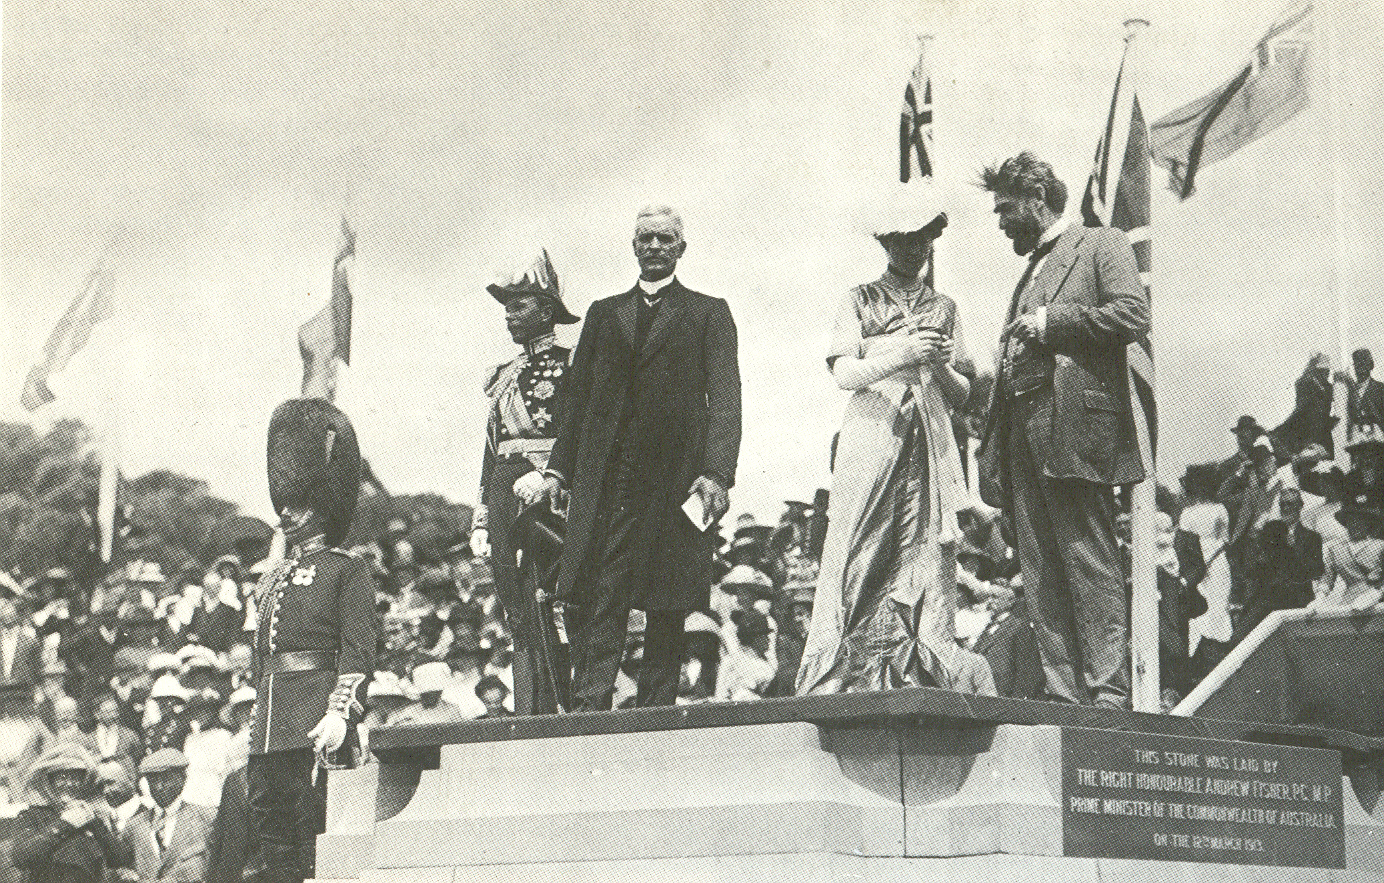 Lady Denman at the ceremony for the naming of Canberra. From the left: Lord Denman, Governor-General; Andrew Fisher, Prime Minister; Lady Denman; King O'Malley, Minister for Home Affairs. 12 March 1913.